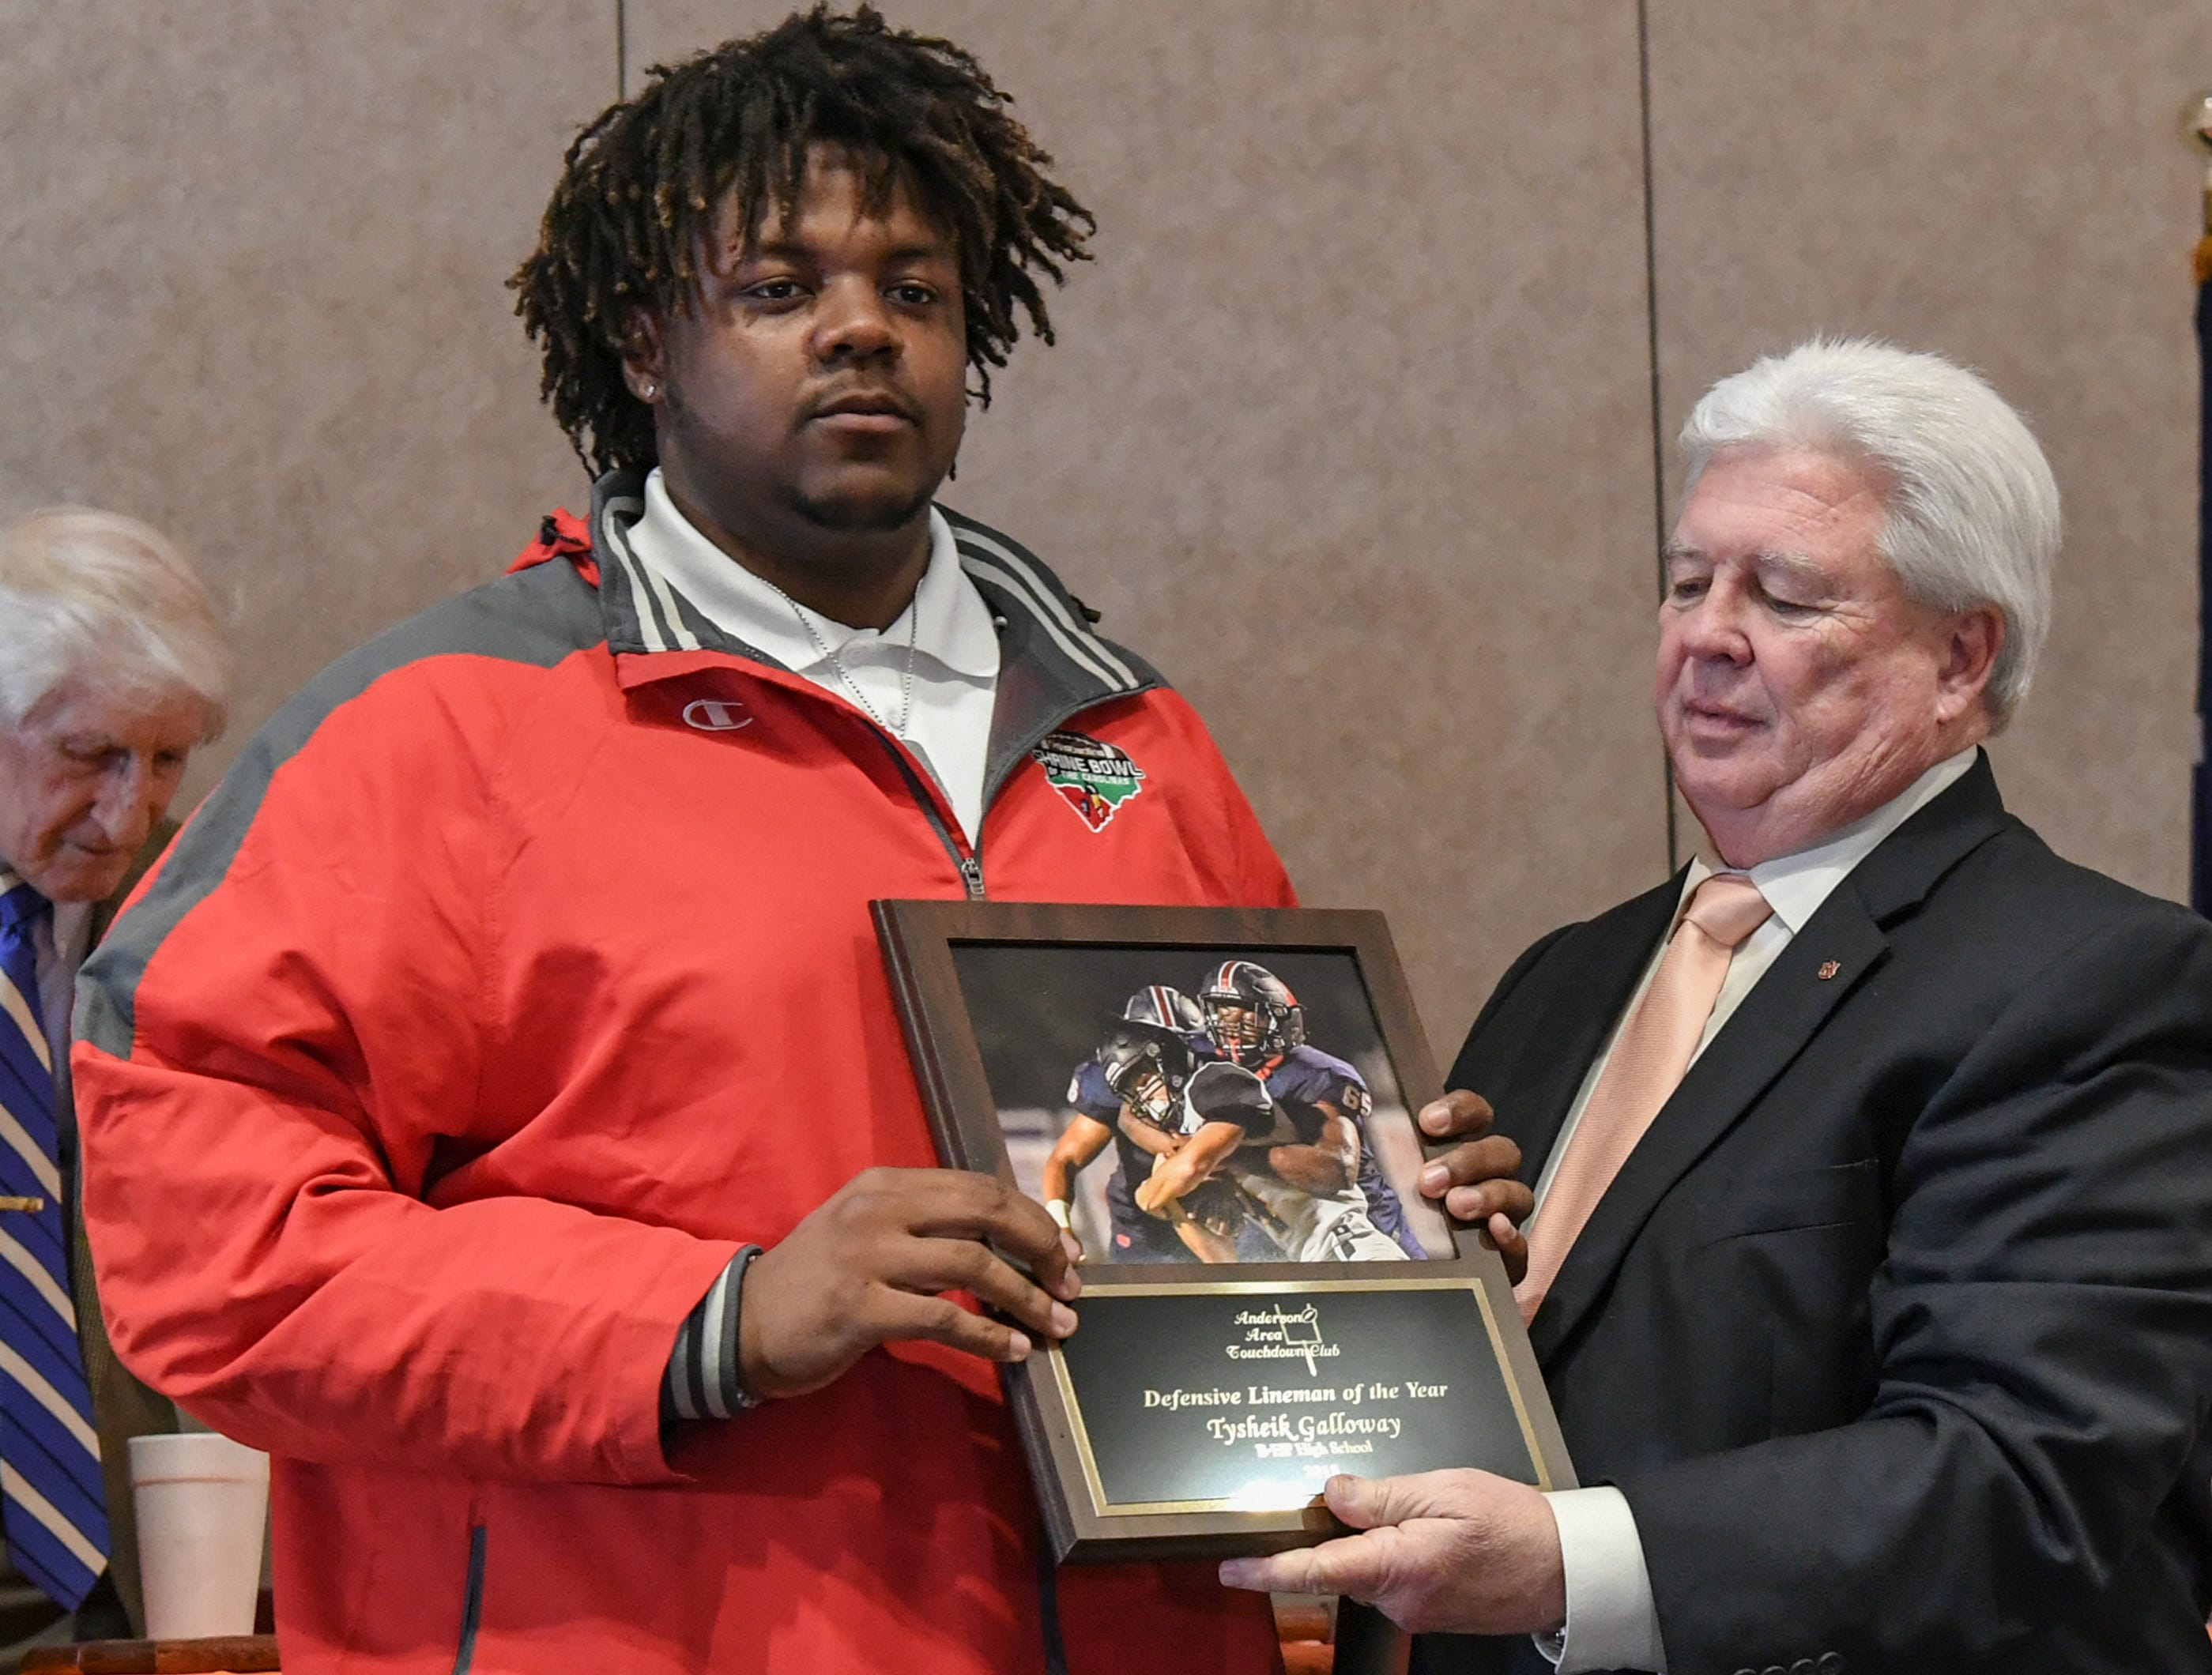 Tysheik Galloway, left, defensive lineman of the year from Belton-Honea Path High School accepts his award from Dick Smith, right, during the Anderson Area Touchdown Club Annual Awards Banquet at the Anderson County Civic Center Monday, April 8th, 2019.